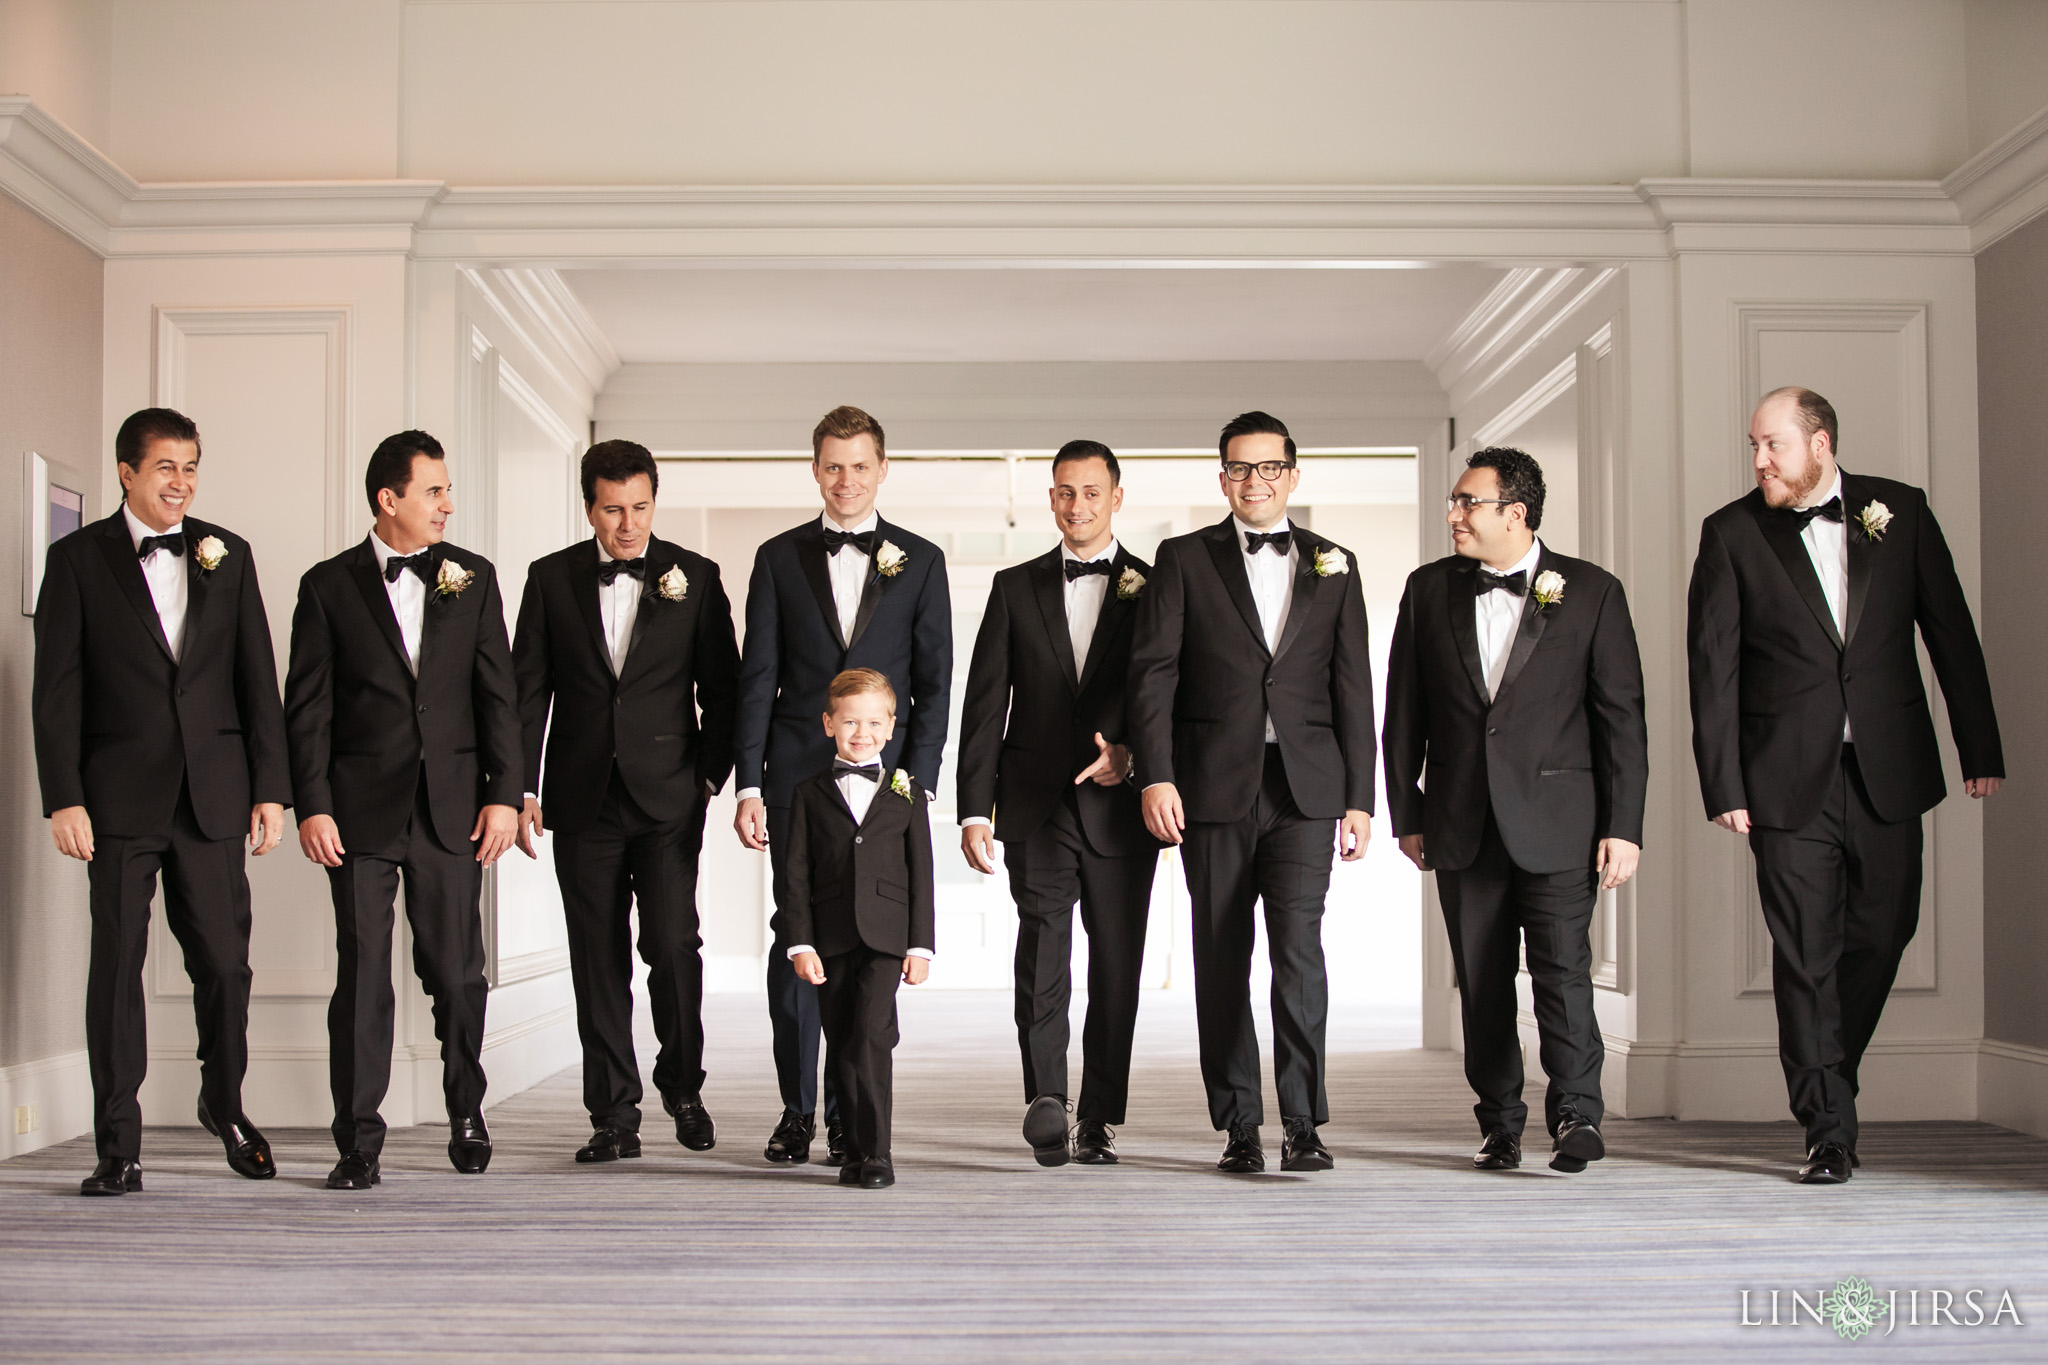 013 ritz carlton marina del rey persian groomsmen wedding photography